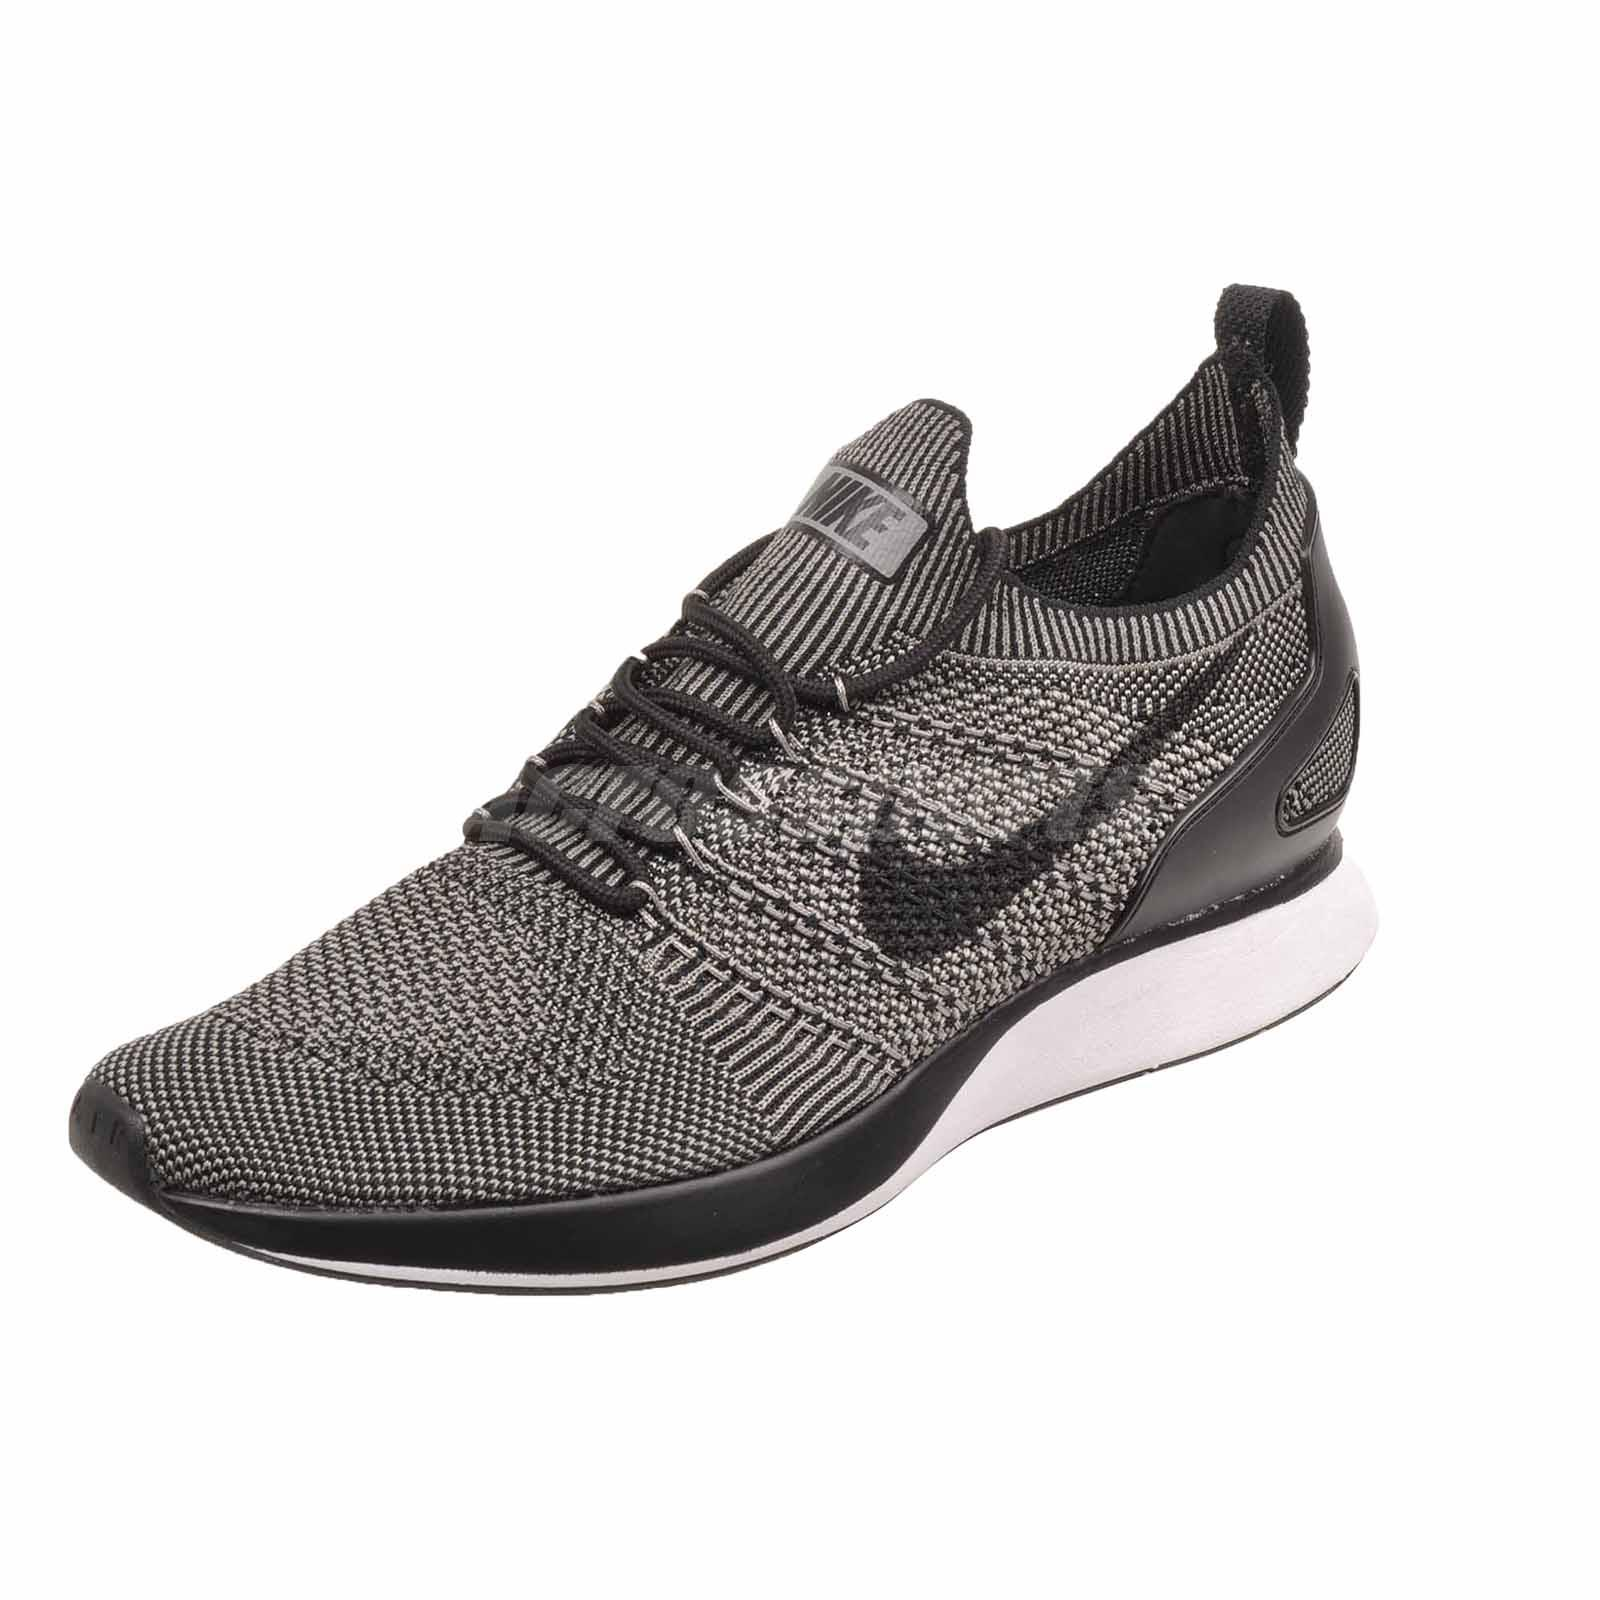 623892daf9d Details about Nike Air Zoom Mariah Flyknit Racer Running Mens Shoes  Charcoal Grey 918264-008